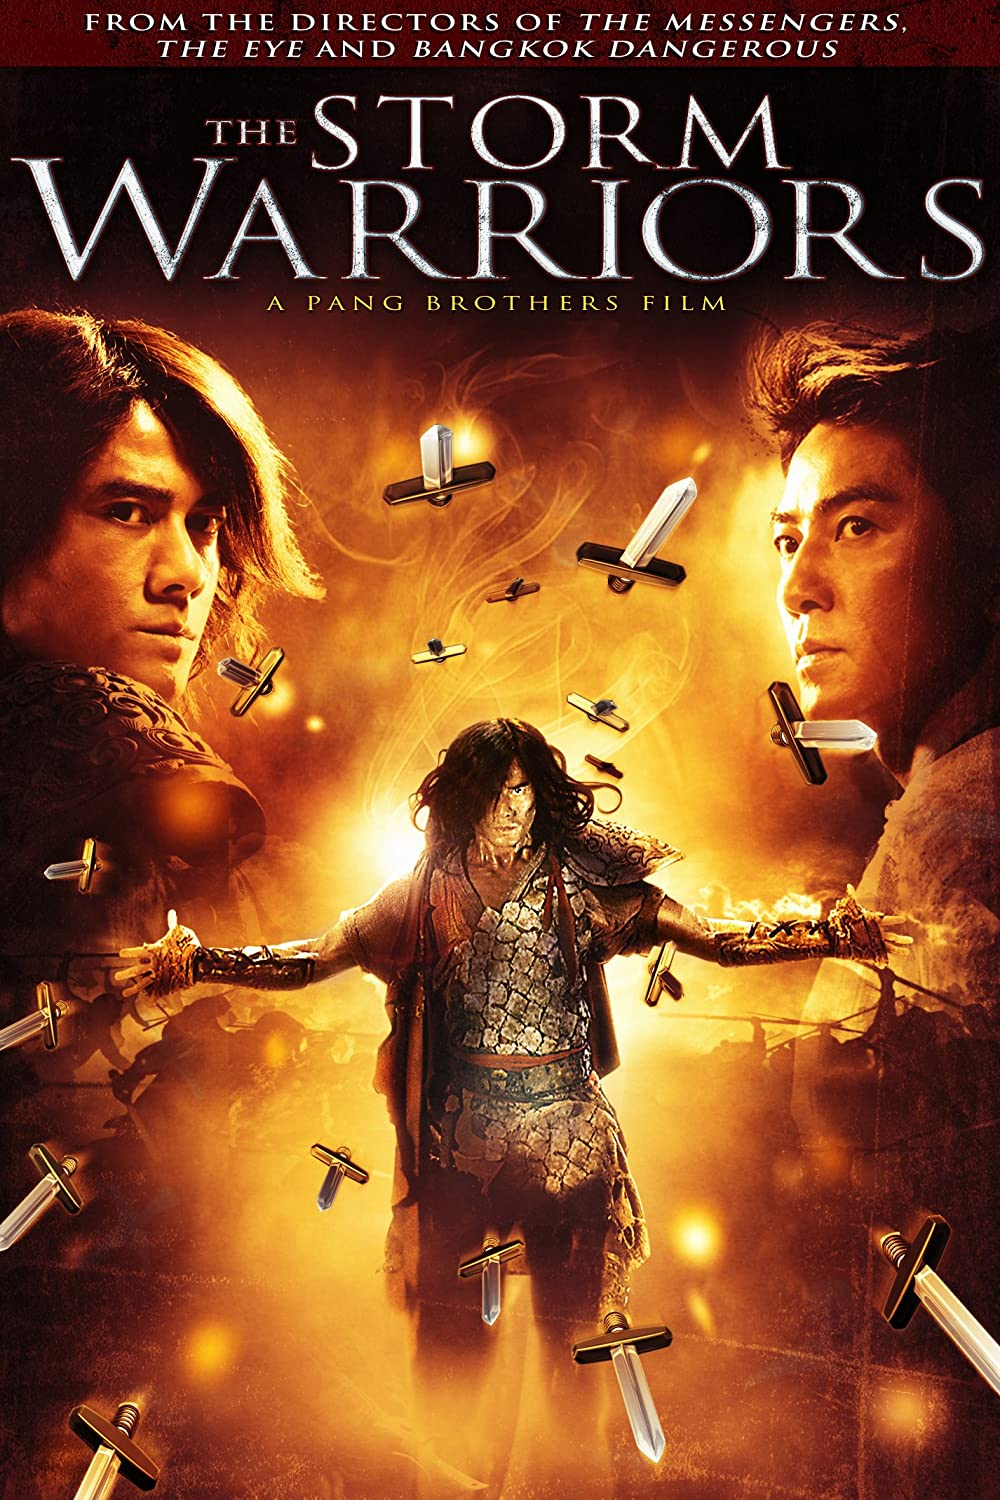 The Storm Warriors 2009 Hindi Dual Audio 720p BluRay ESub 1.11GB Download